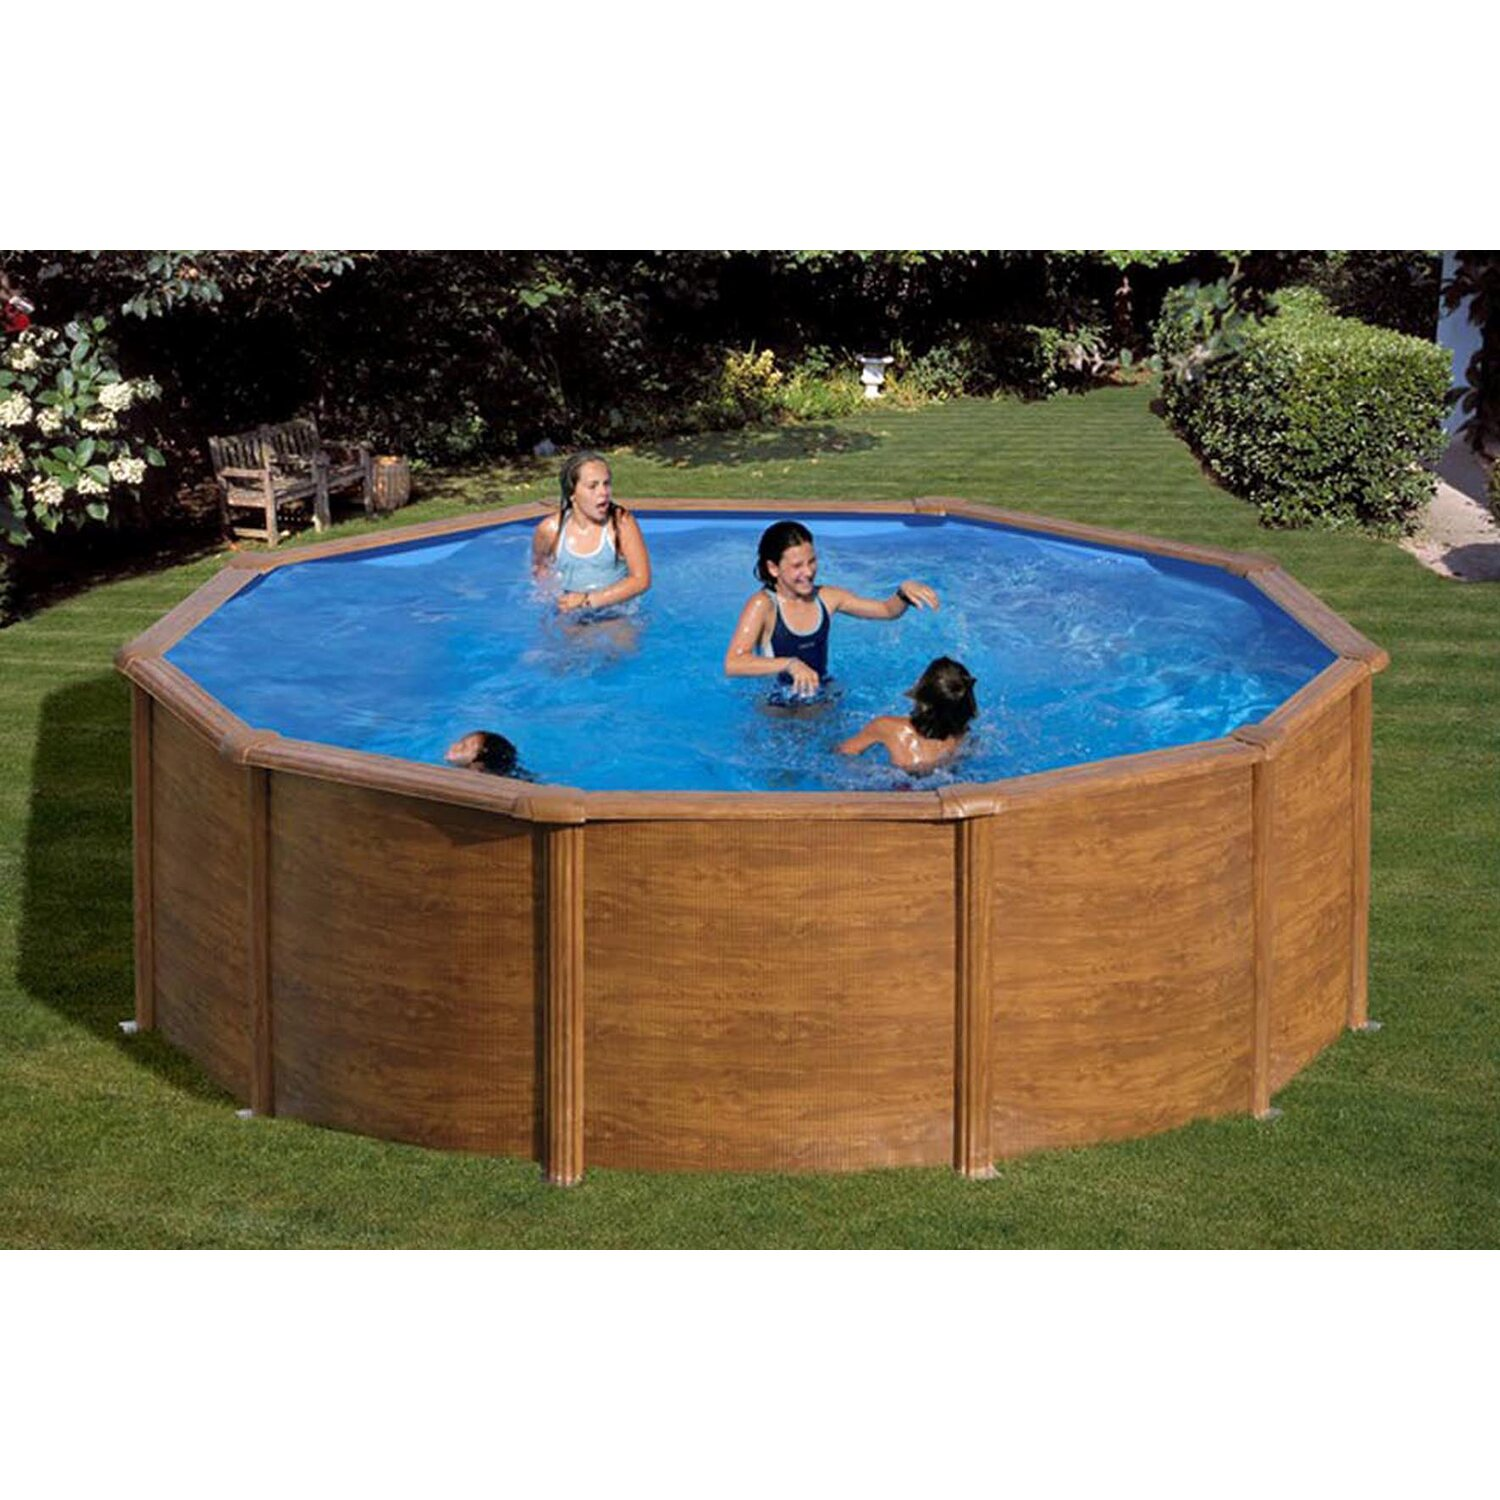 Summer fun holzpool set santa fe aufstellbecken 390 cm x for Obi holzpool